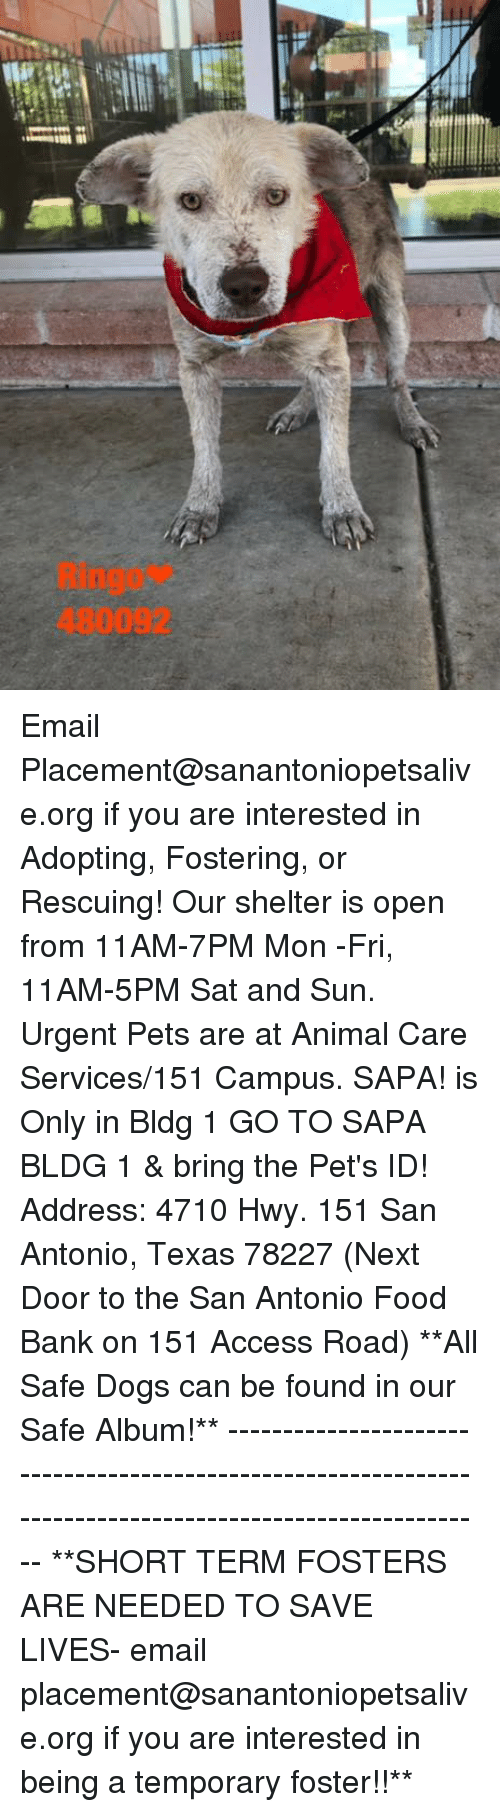 Dogs, Food, and Memes: Ringo*  480092 Email Placement@sanantoniopetsalive.org if you are interested in Adopting, Fostering, or Rescuing!  Our shelter is open from 11AM-7PM Mon -Fri, 11AM-5PM Sat and Sun.  Urgent Pets are at Animal Care Services/151 Campus. SAPA! is Only in Bldg 1 GO TO SAPA BLDG 1 & bring the Pet's ID! Address: 4710 Hwy. 151 San Antonio, Texas 78227 (Next Door to the San Antonio Food Bank on 151 Access Road)  **All Safe Dogs can be found in our Safe Album!** ---------------------------------------------------------------------------------------------------------- **SHORT TERM FOSTERS ARE NEEDED TO SAVE LIVES- email placement@sanantoniopetsalive.org if you are interested in being a temporary foster!!**